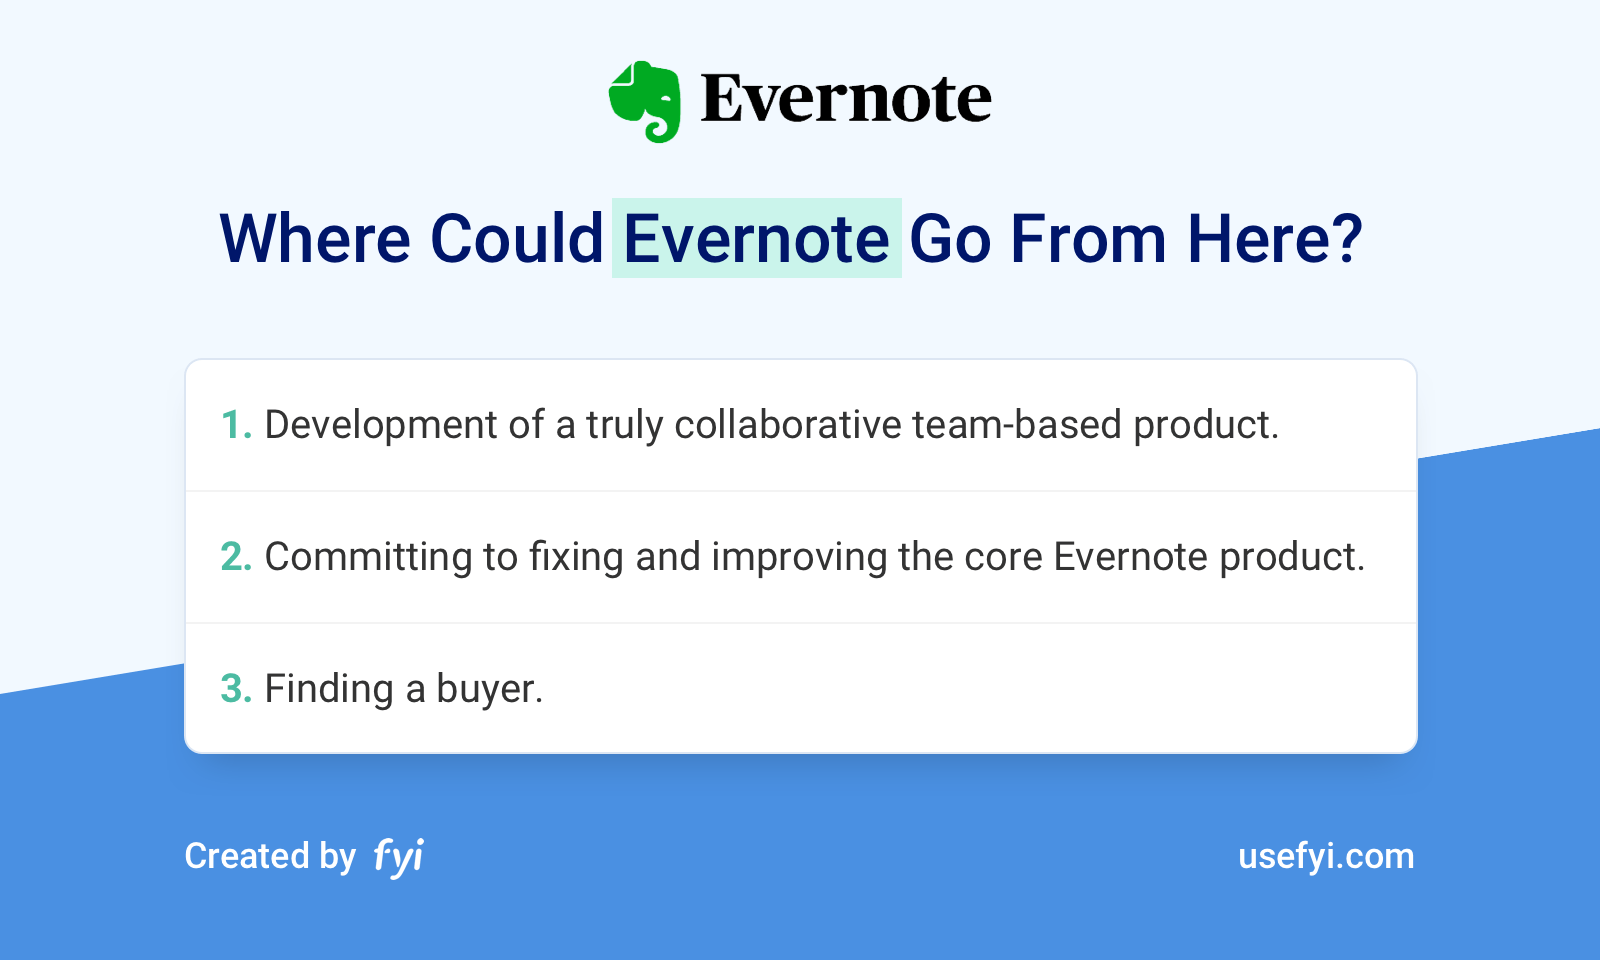 Evernote Future